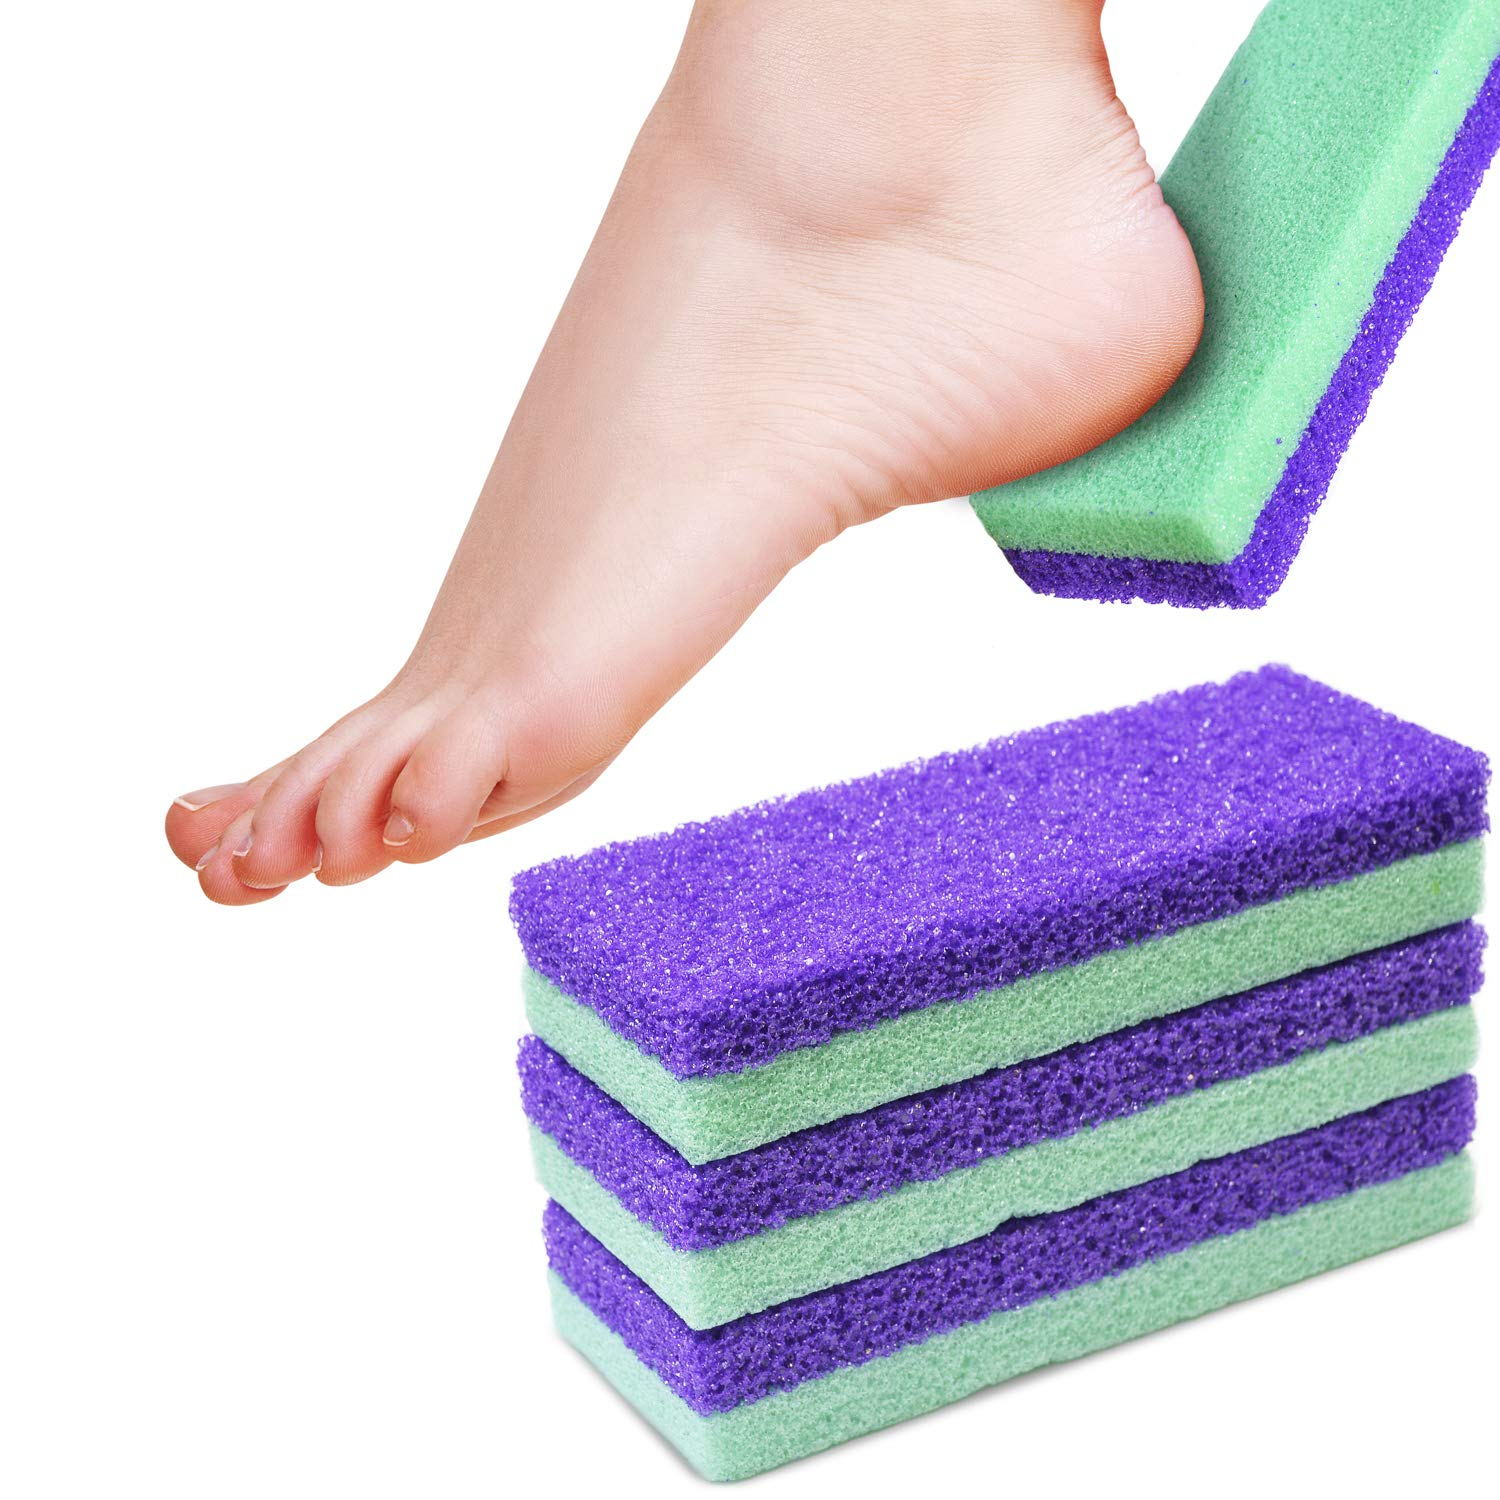 Maccibelle Salon Foot Max 83% OFF Pumice and Feet for Heels Cal Max 43% OFF Scrubber